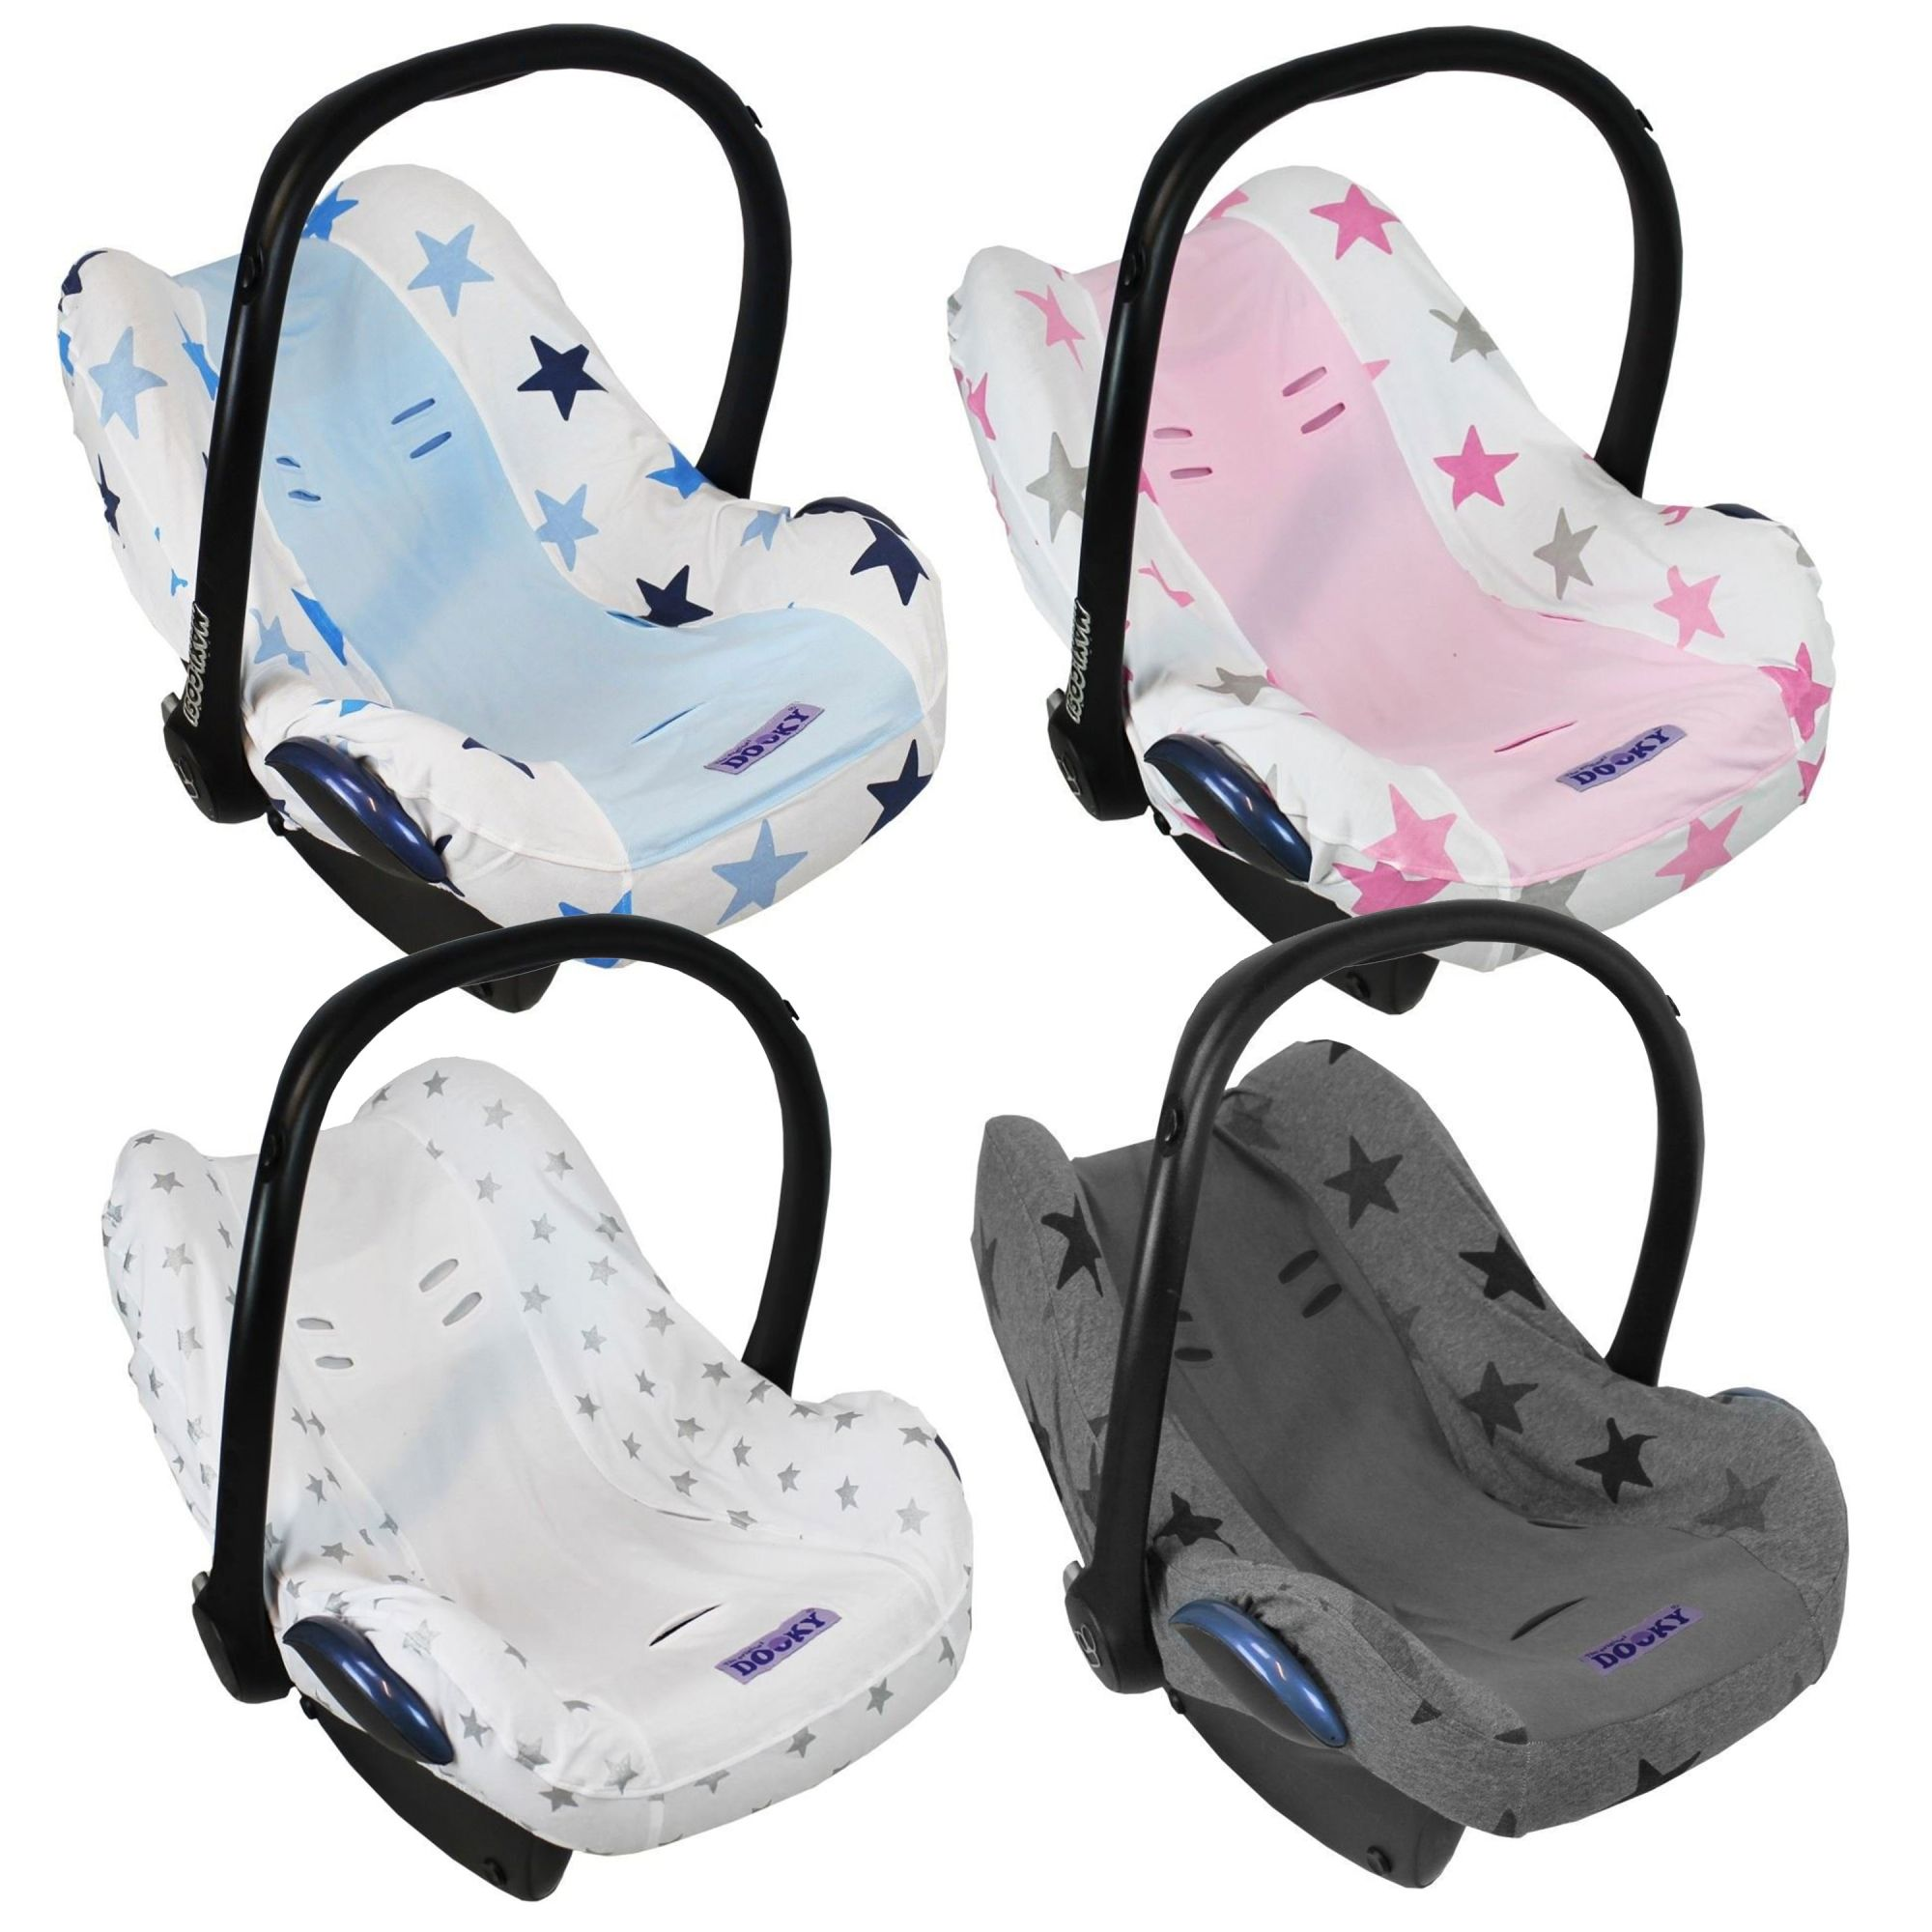 Car Seat Cover For Flying